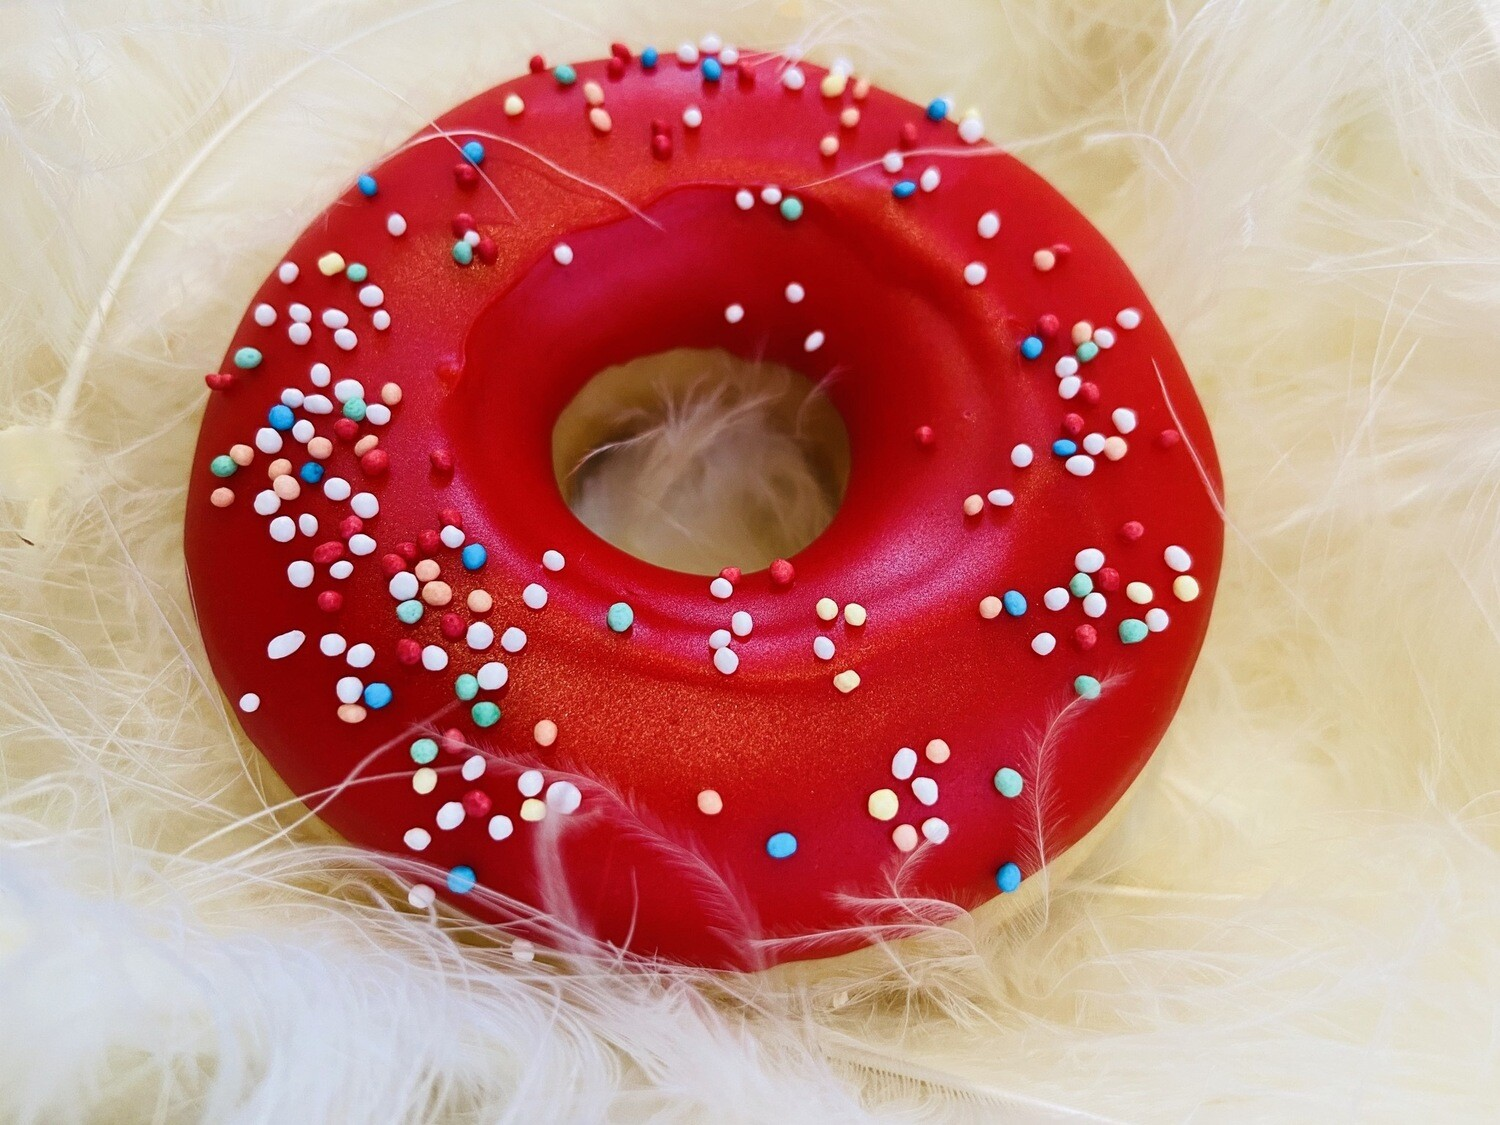 Donuts Pomme D'amour